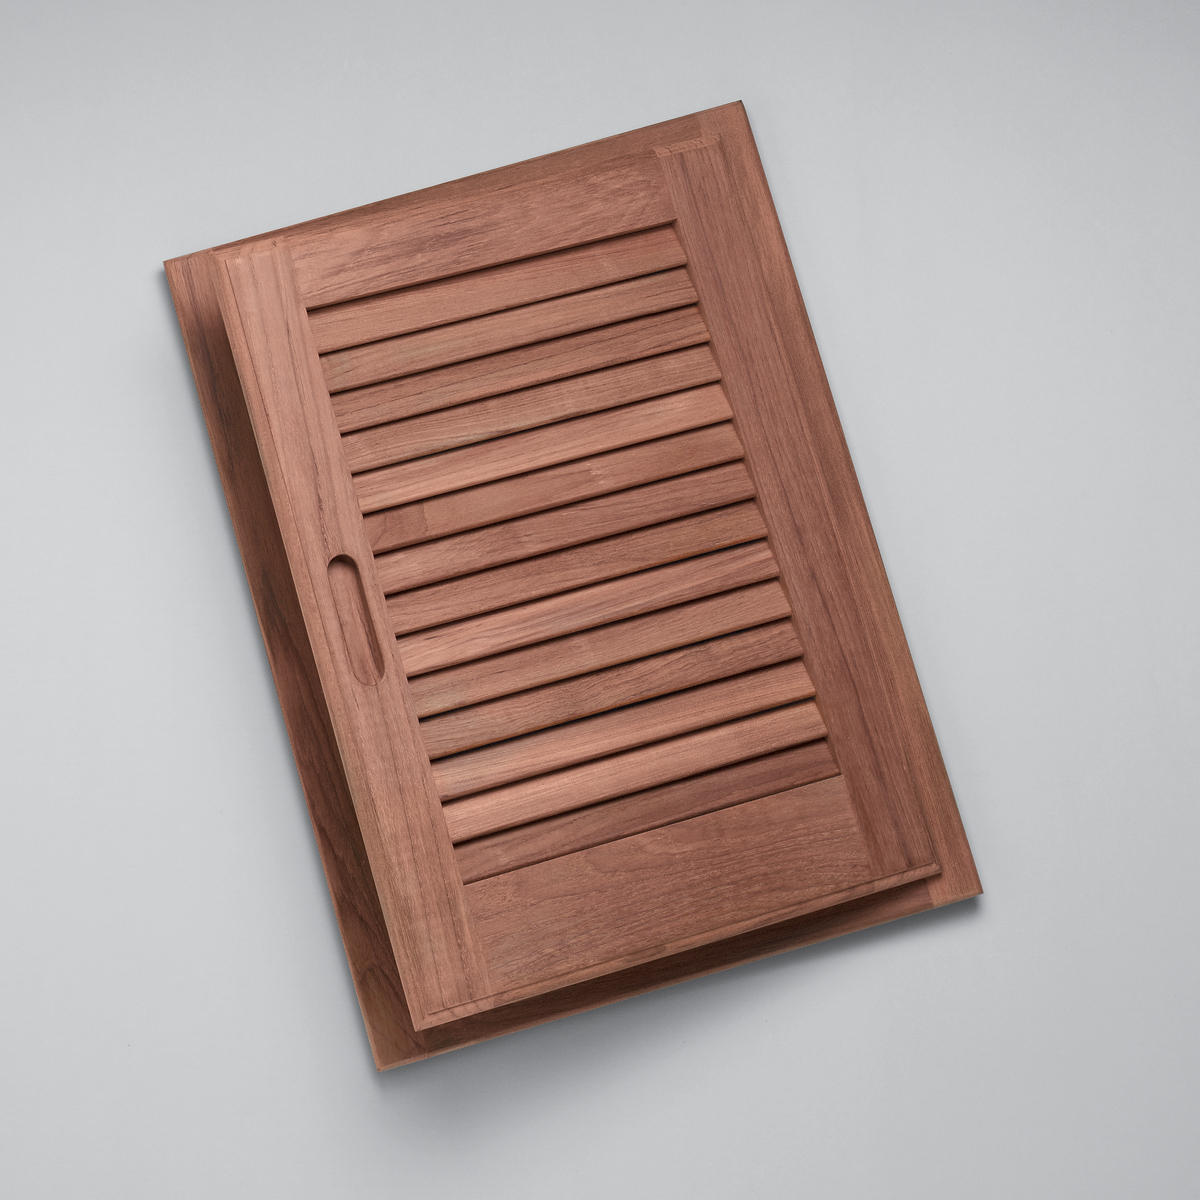 2 products Teak Doors and Drawers & Teak Boat Cabin and Deck Accessories | Bosun Supplies - Bosun Supplies